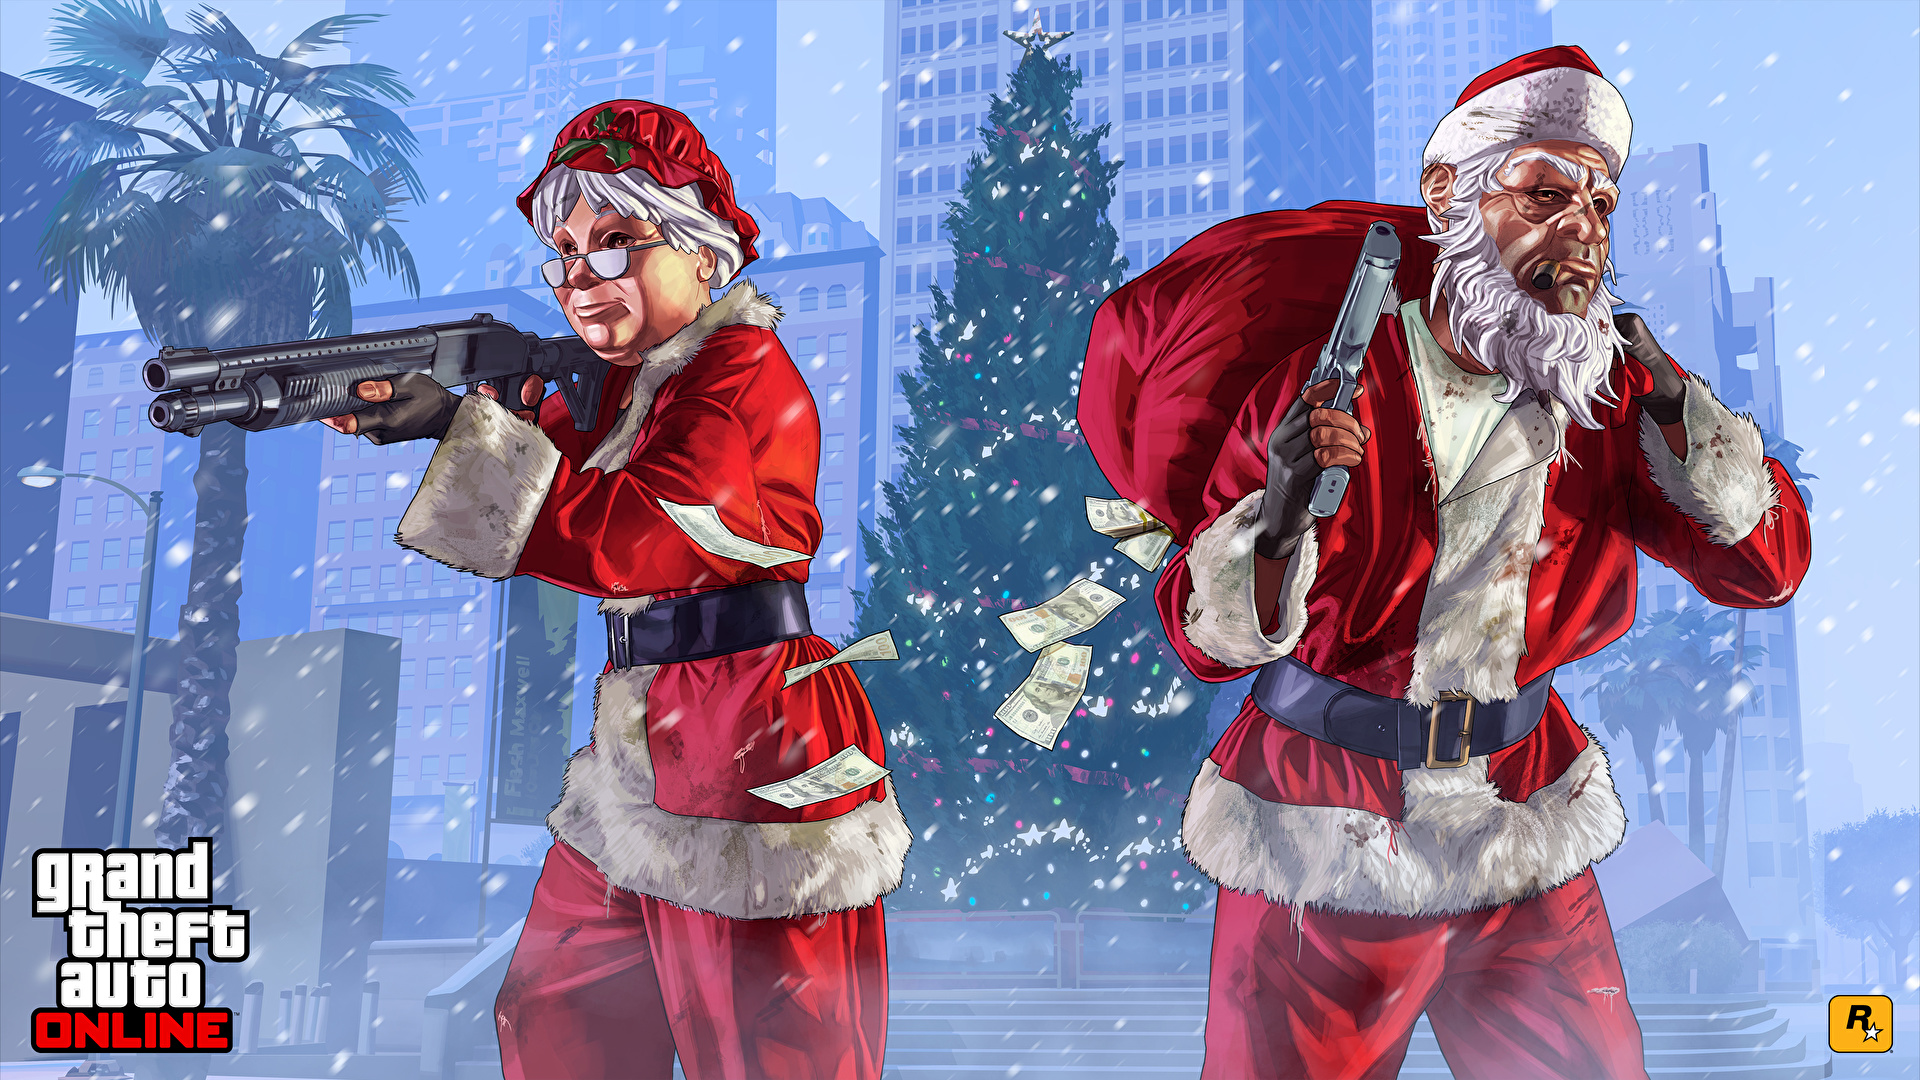 GTA_5_Christmas_Rifles_510744.jpg